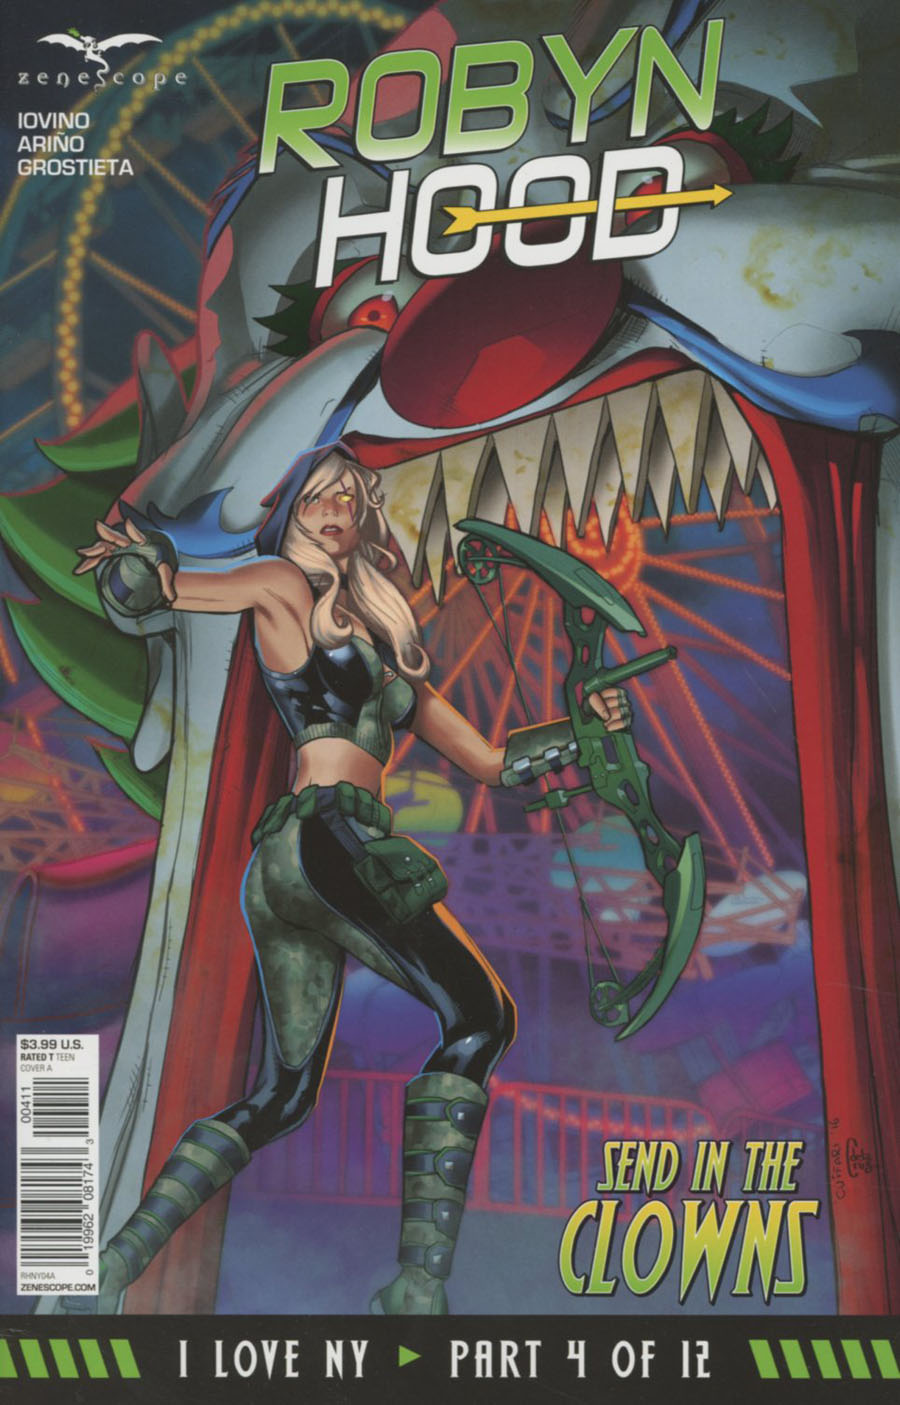 Grimm Fairy Tales Presents Robyn Hood I Love NY #4 Cover A Salvatore Cuffari